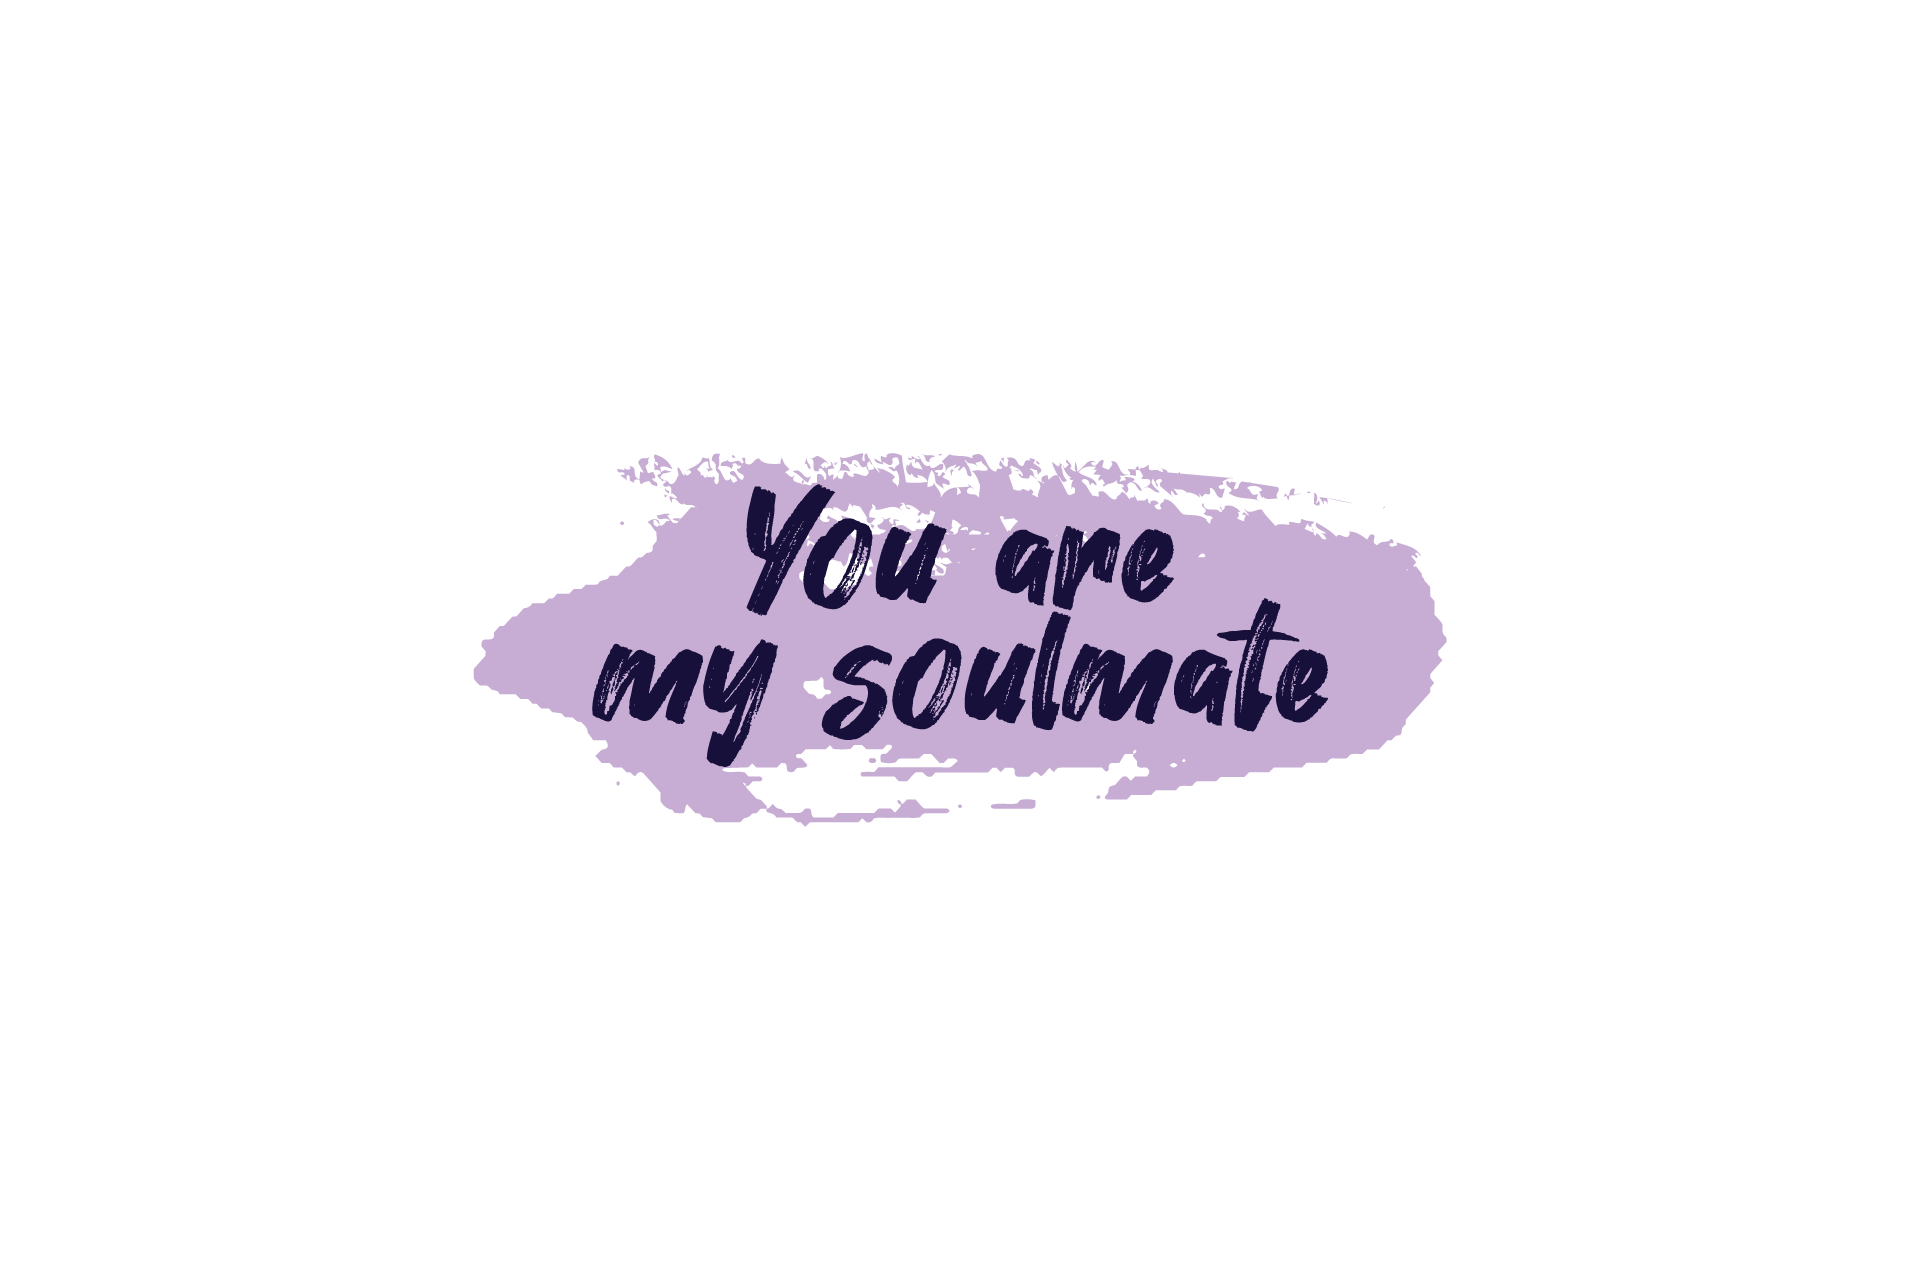 Name generator soulmate What Is